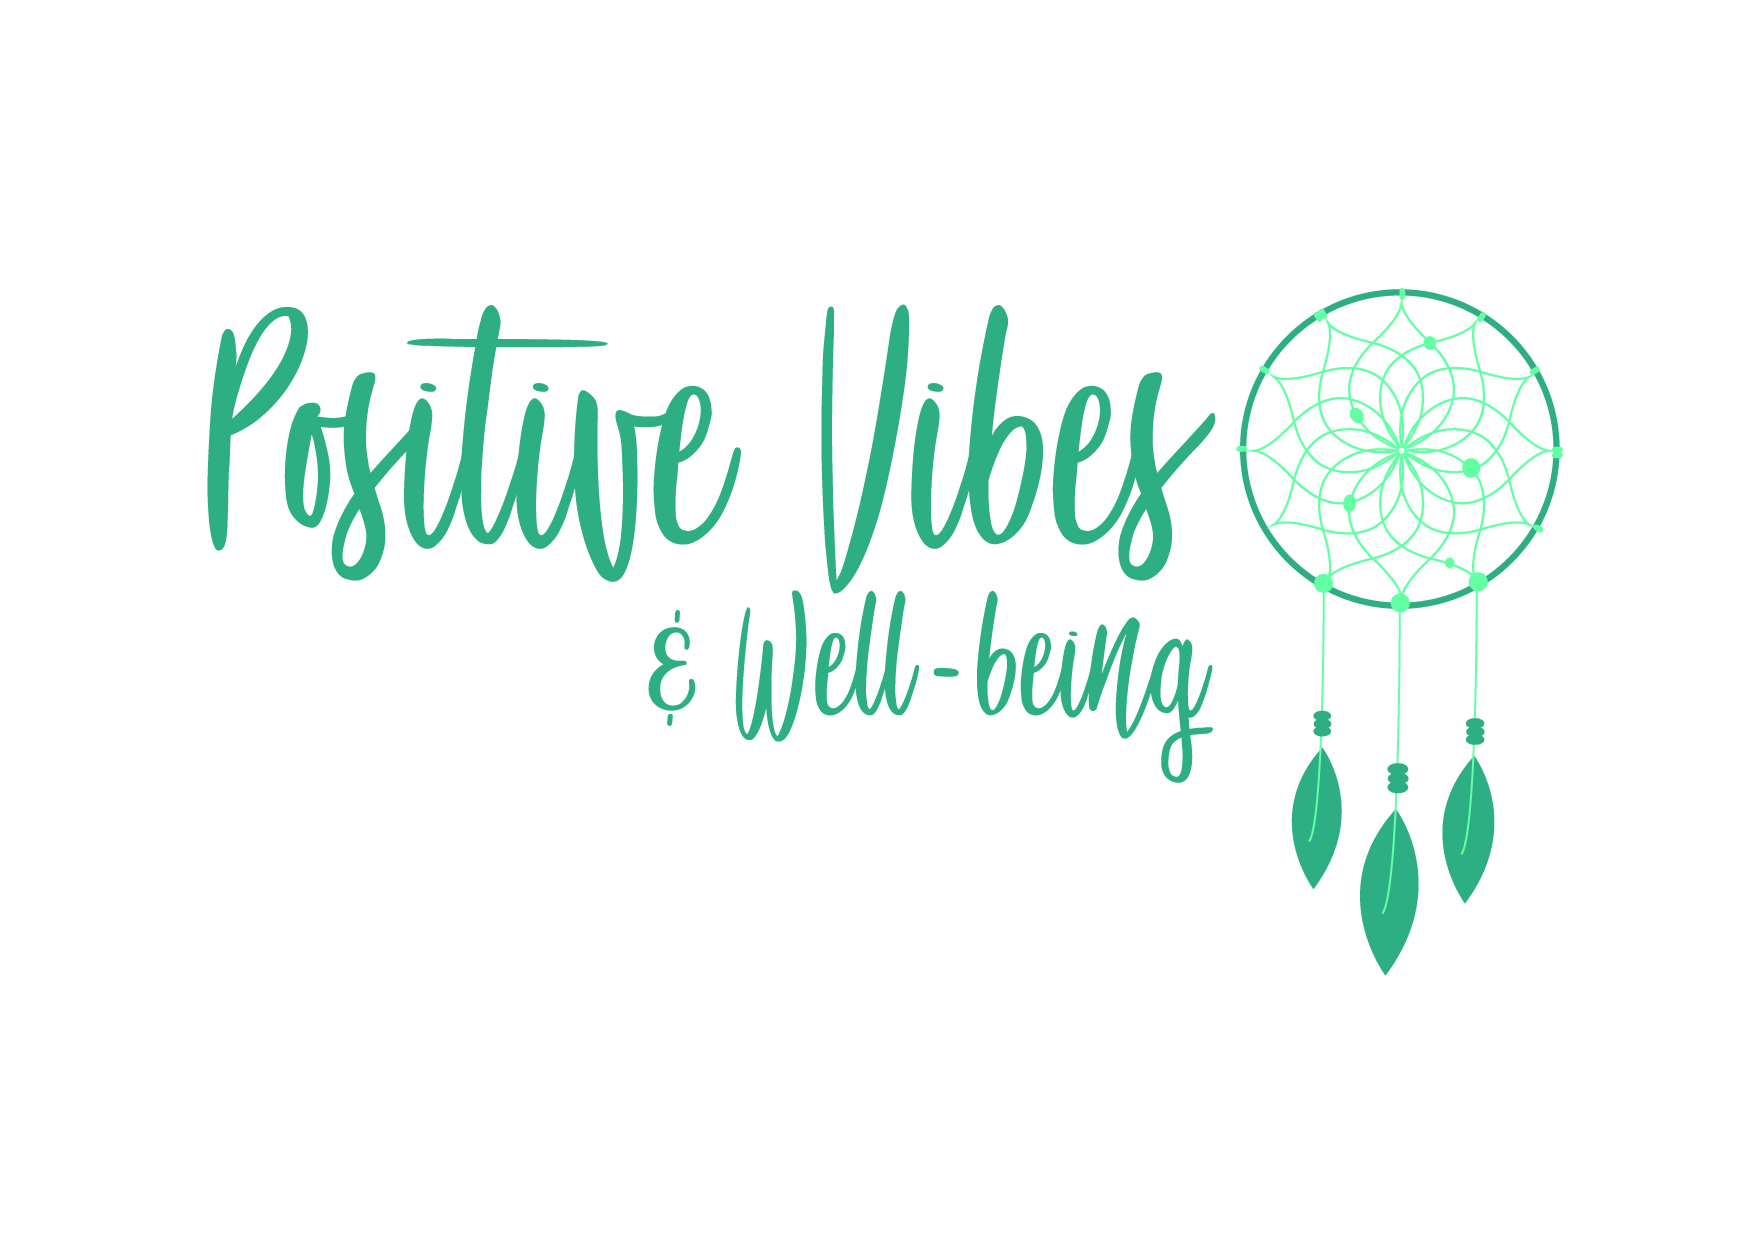 Positive Vibes and Wellbeing